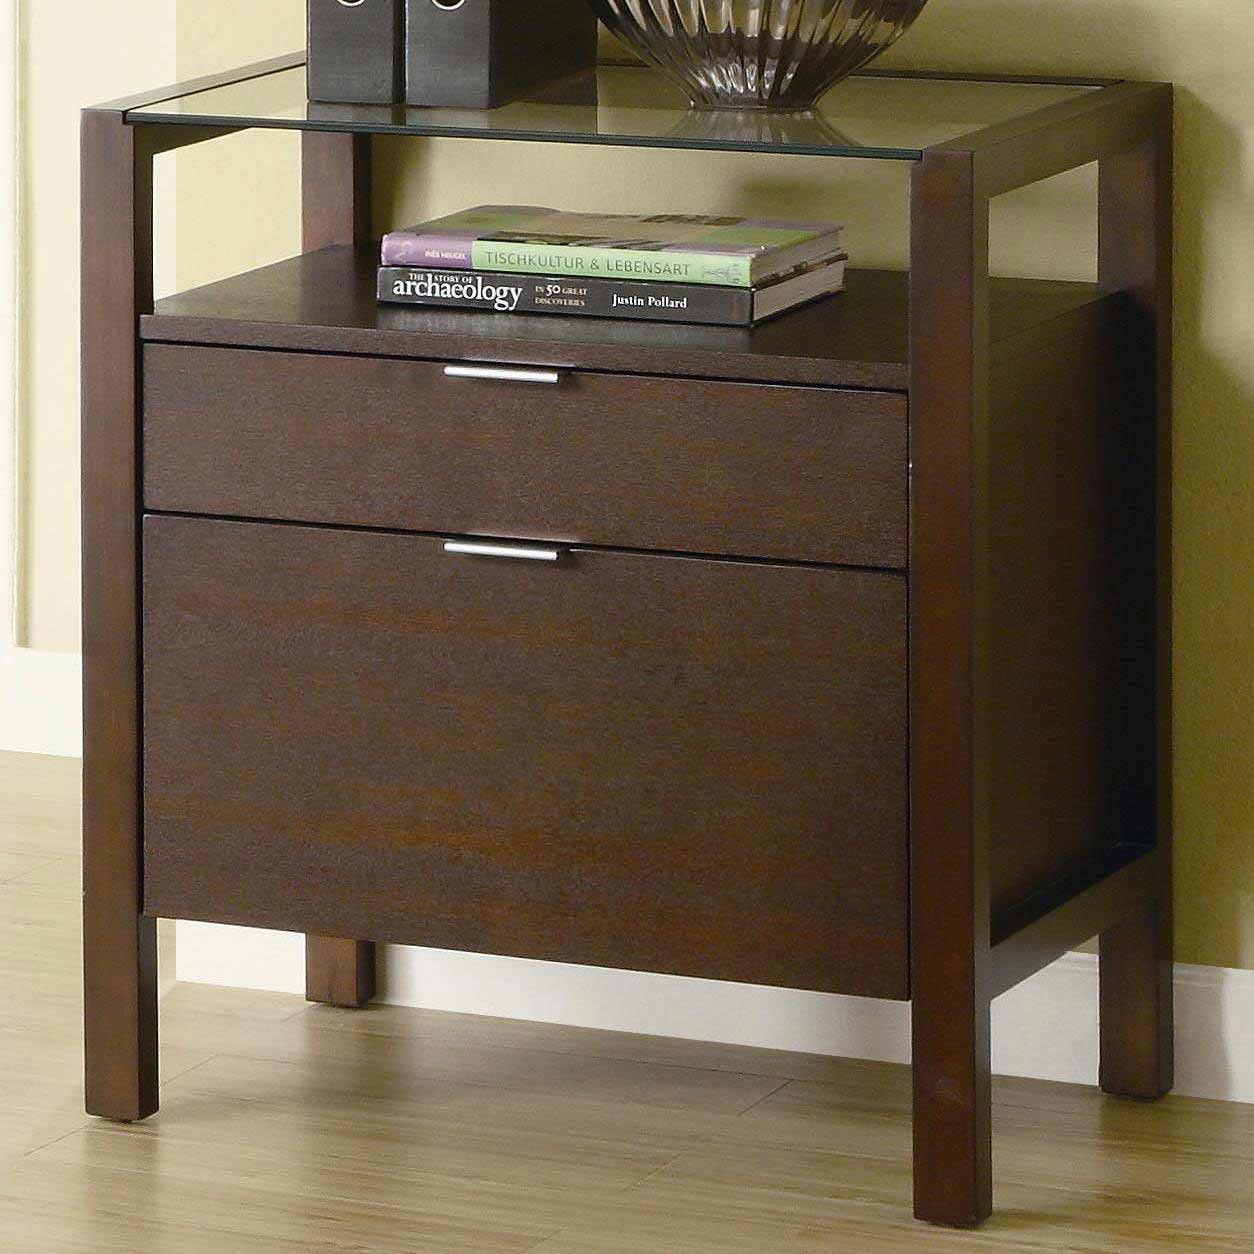 50 Modern File Cabinets Home Office Small Kitchen Island Ideas With Seating Check More